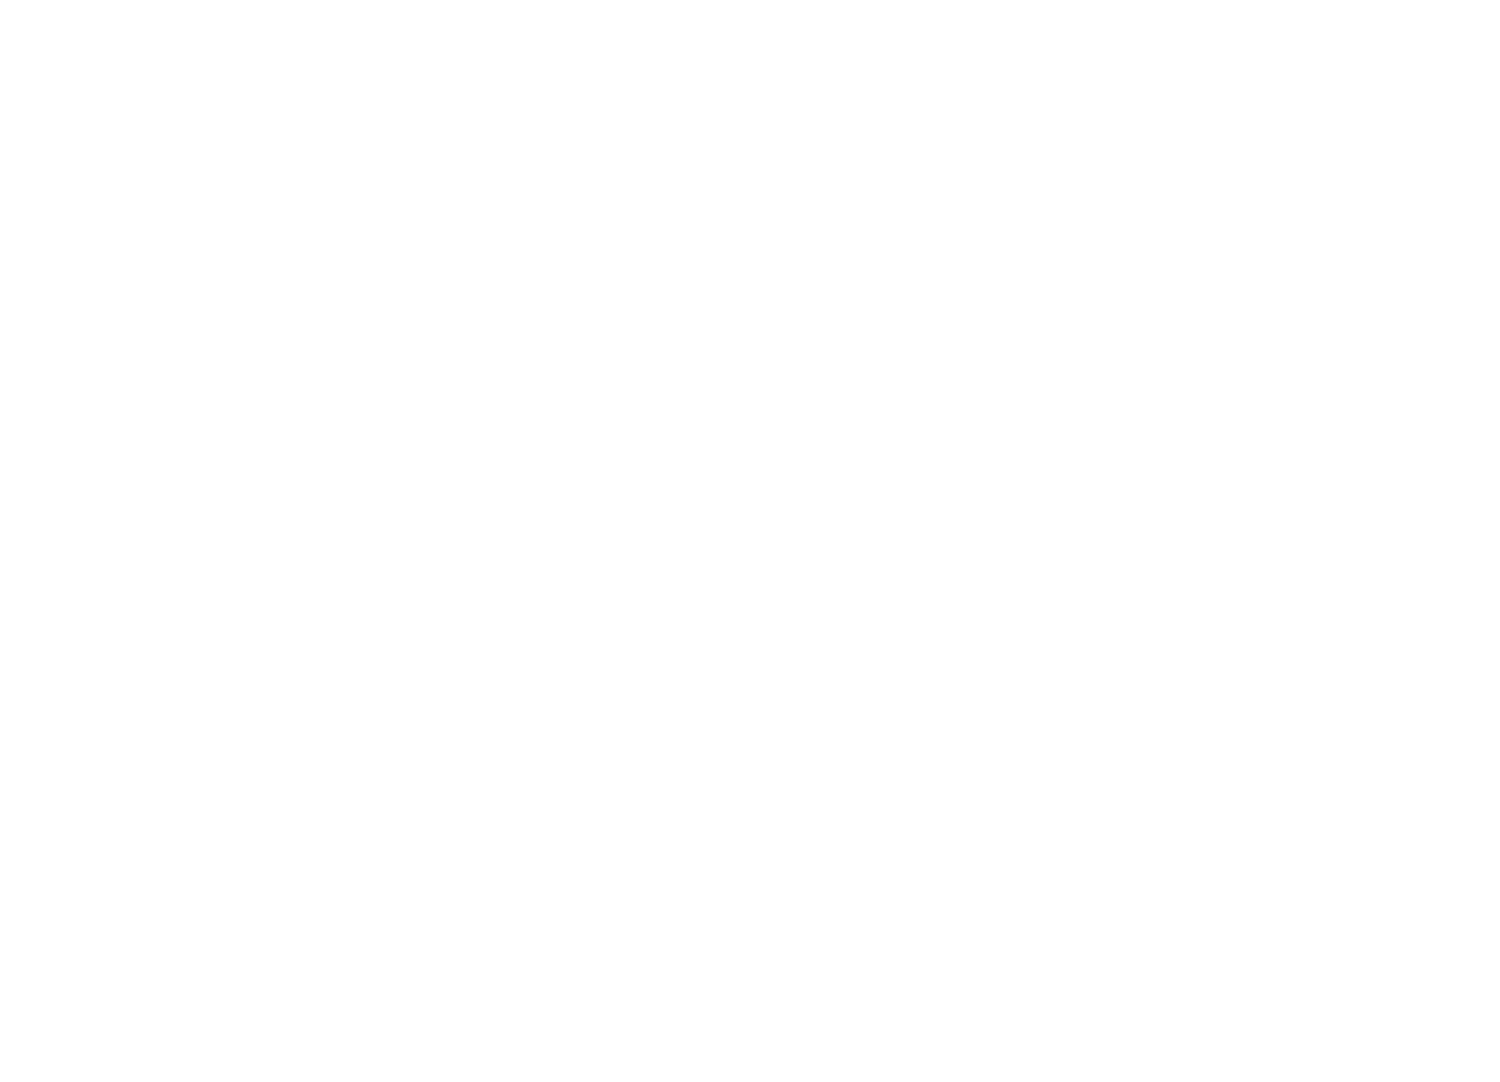 IIDA Illinois Chapter